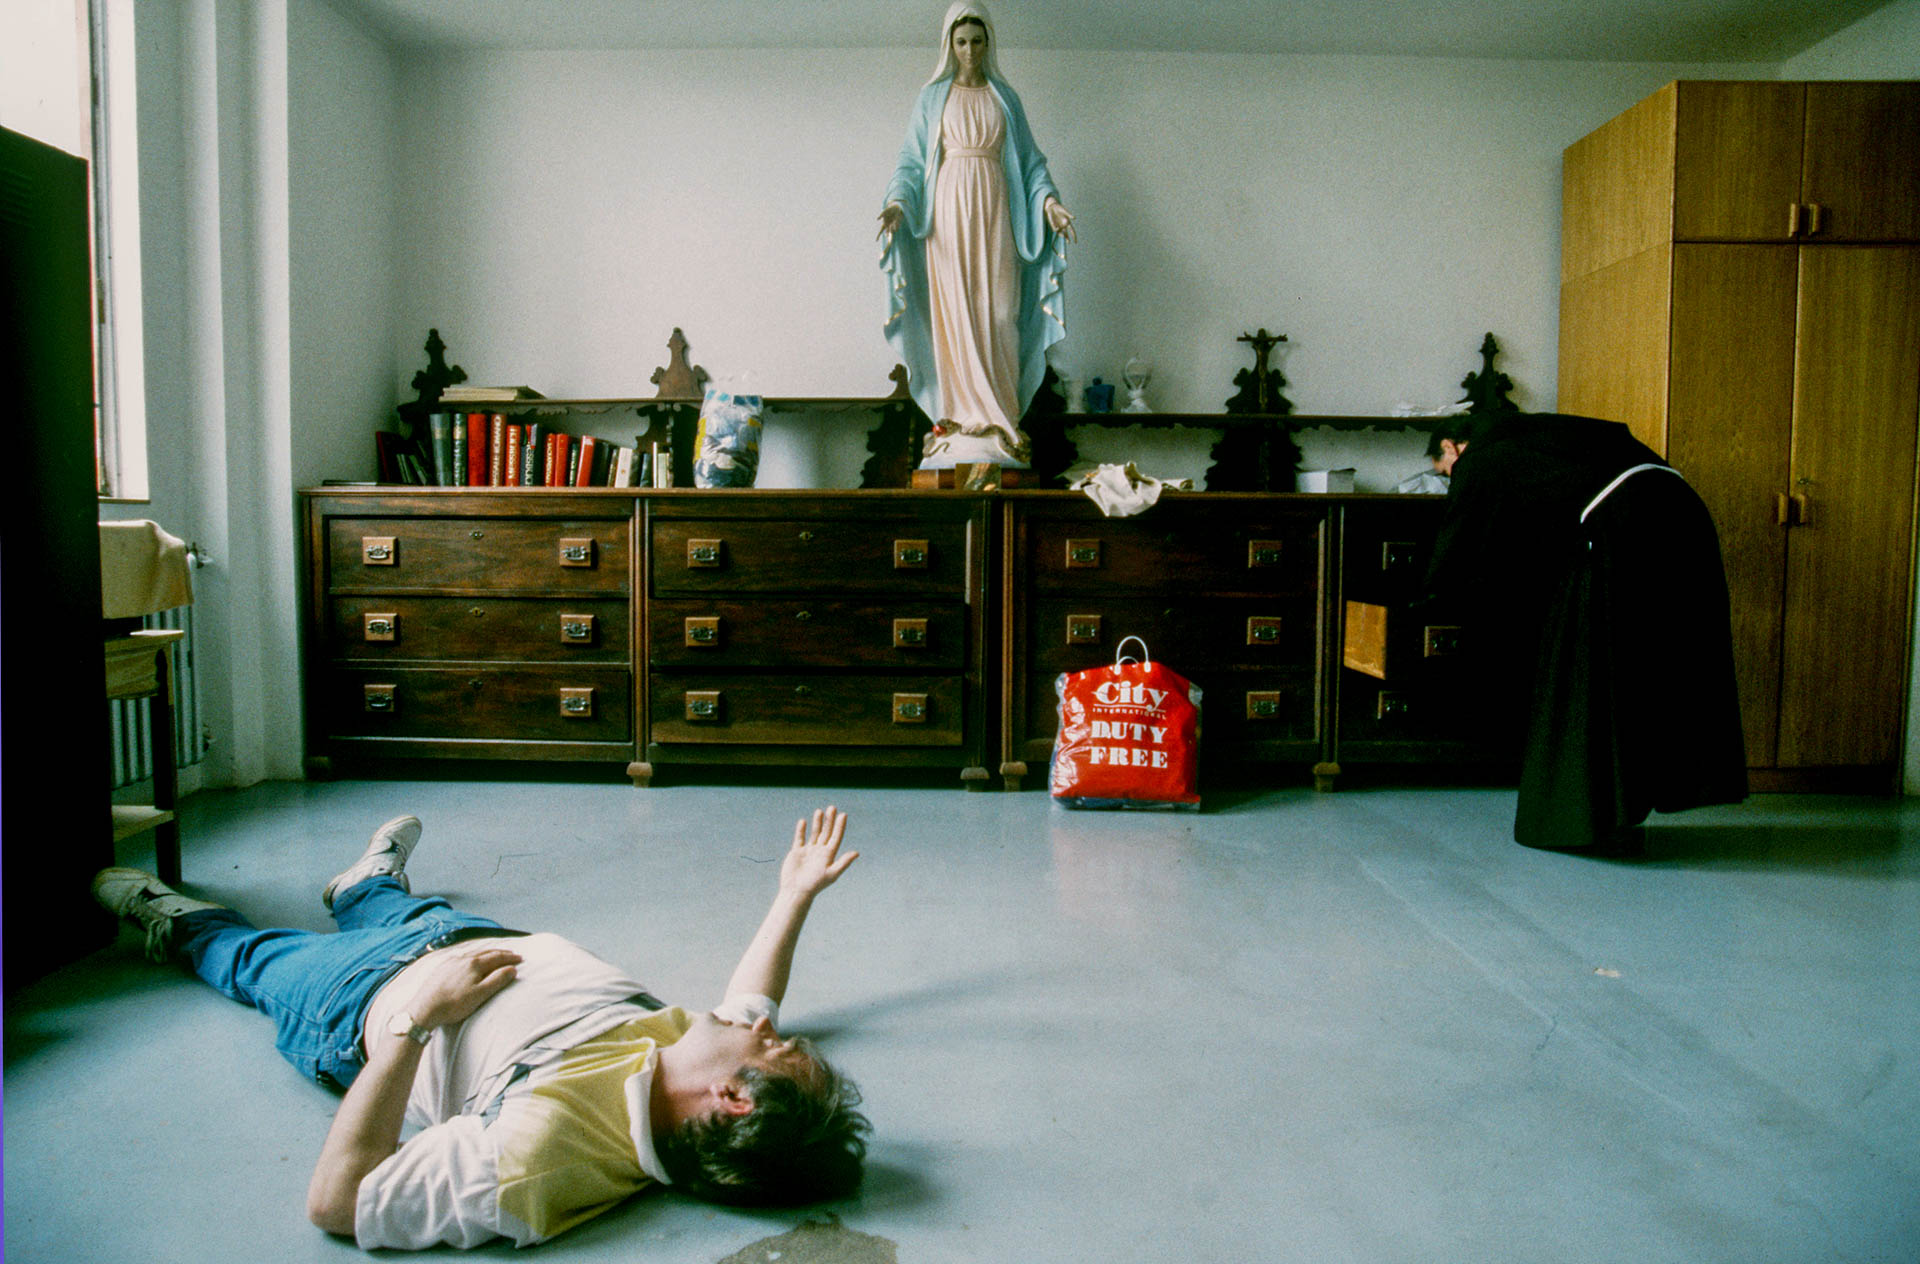 The miracle around the world: a believer just after an exorcism by Father Jozo in the Sacristy of the monastery.